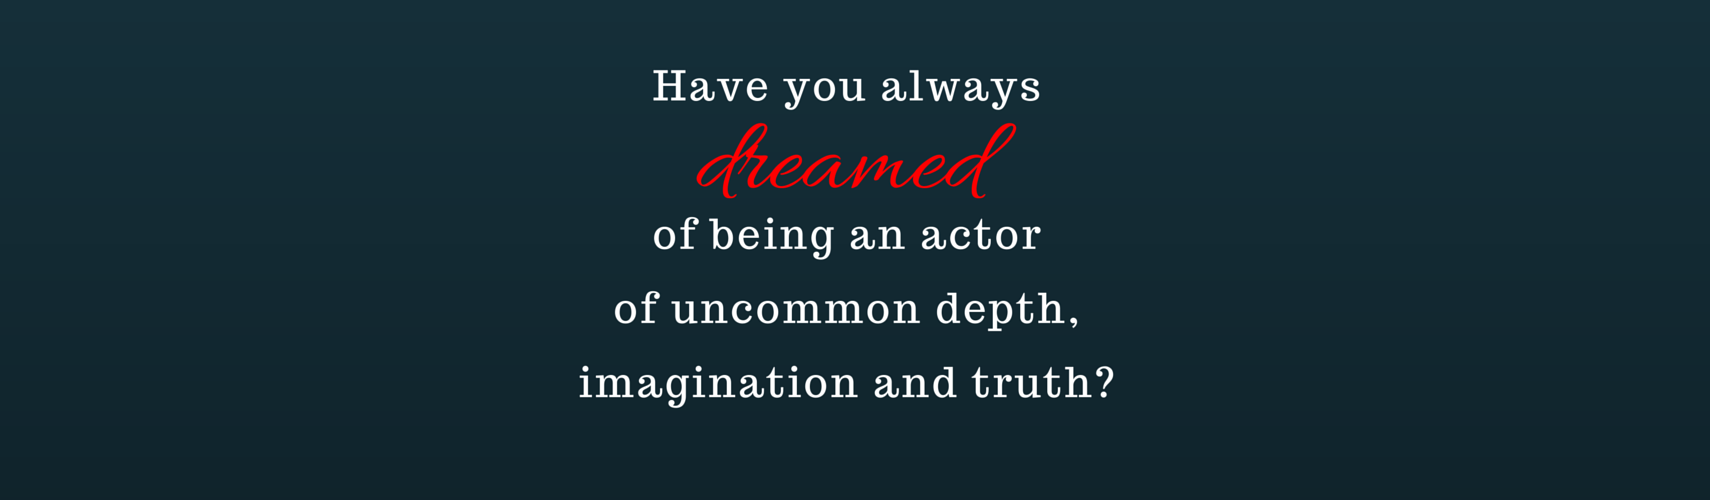 Have you always dreamed of being an actor of uncommon depth, imagination & truth?